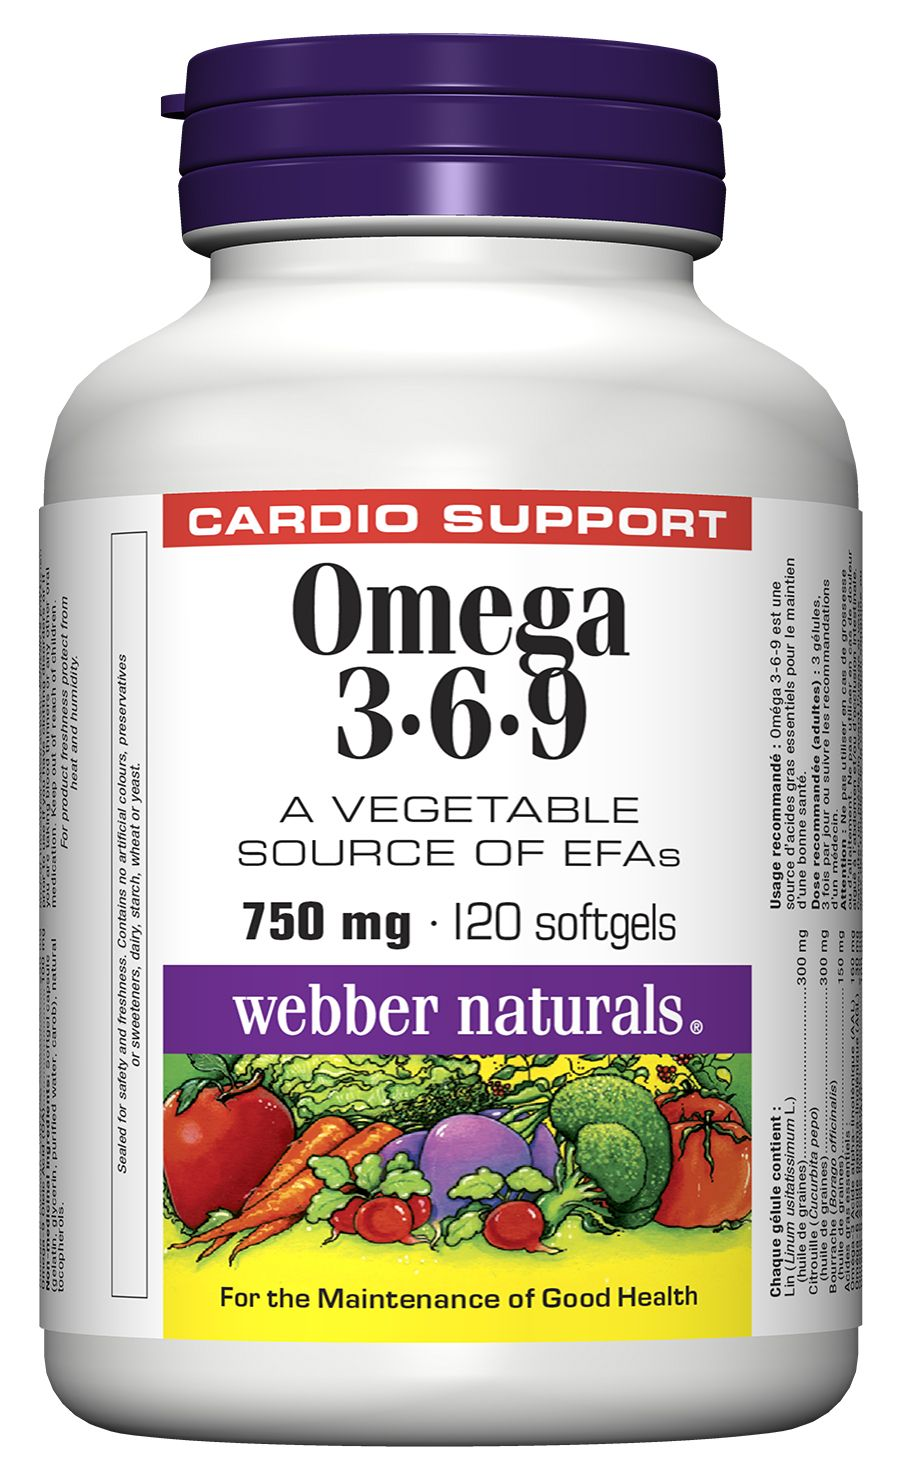 Omega 3 6 9 Plant Based Source Of Efas Flax Pumpkin And Borage Seed Oils Balanced Omega 3 6 9 Oils Can Help Improve Skin Condit Health Health And Nutrition